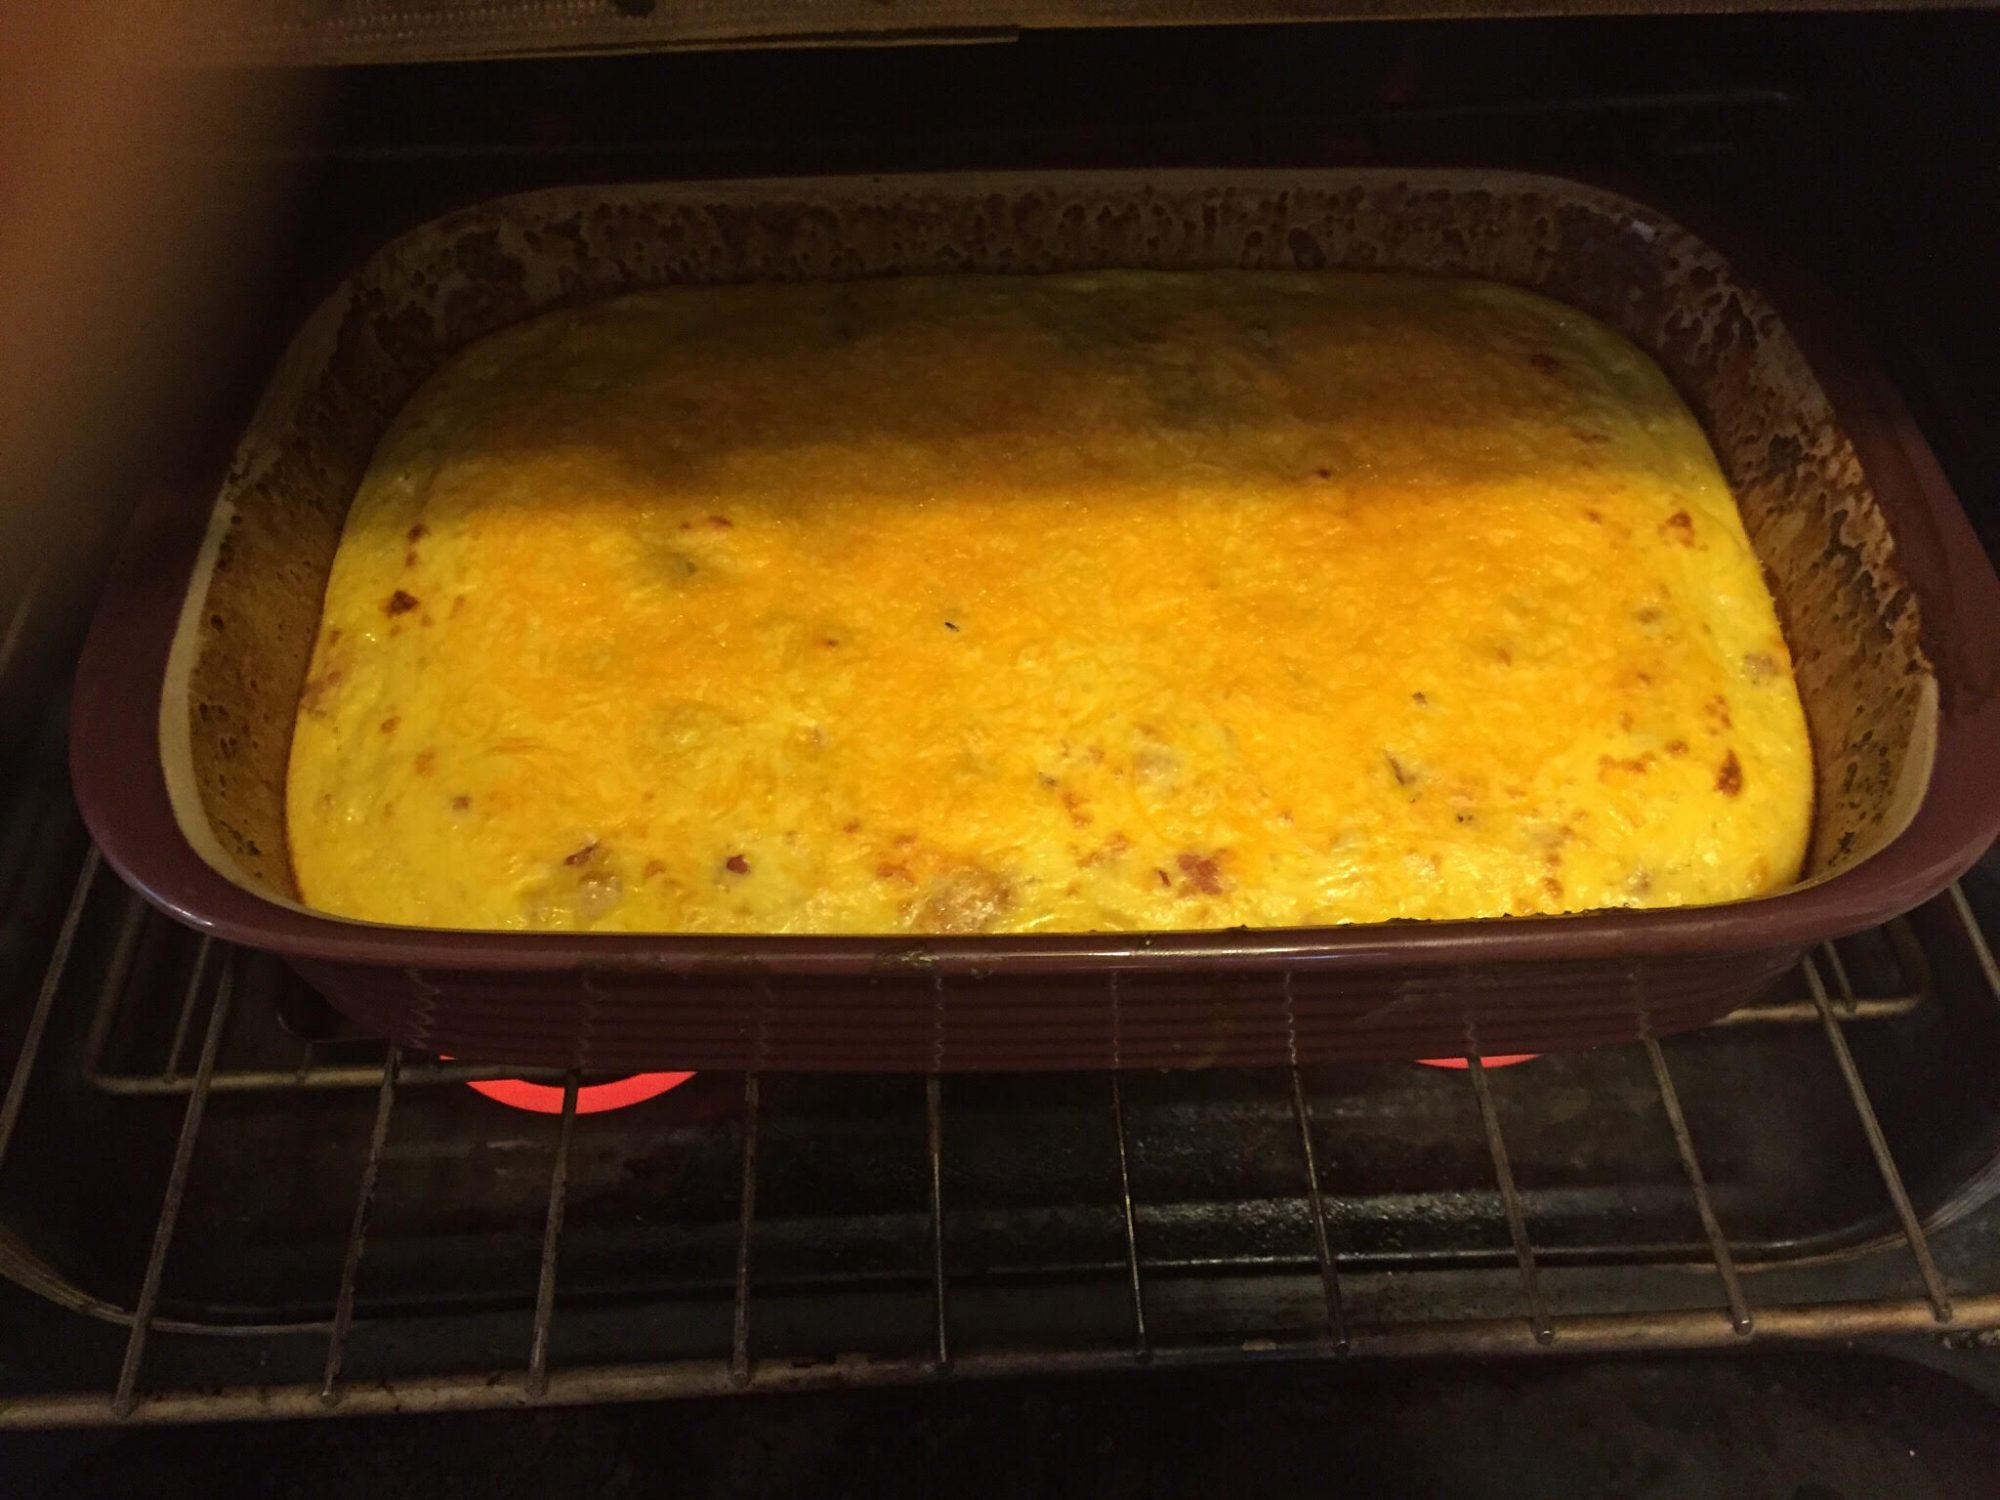 The Southern Breakfast Casserole On Our Holiday Table